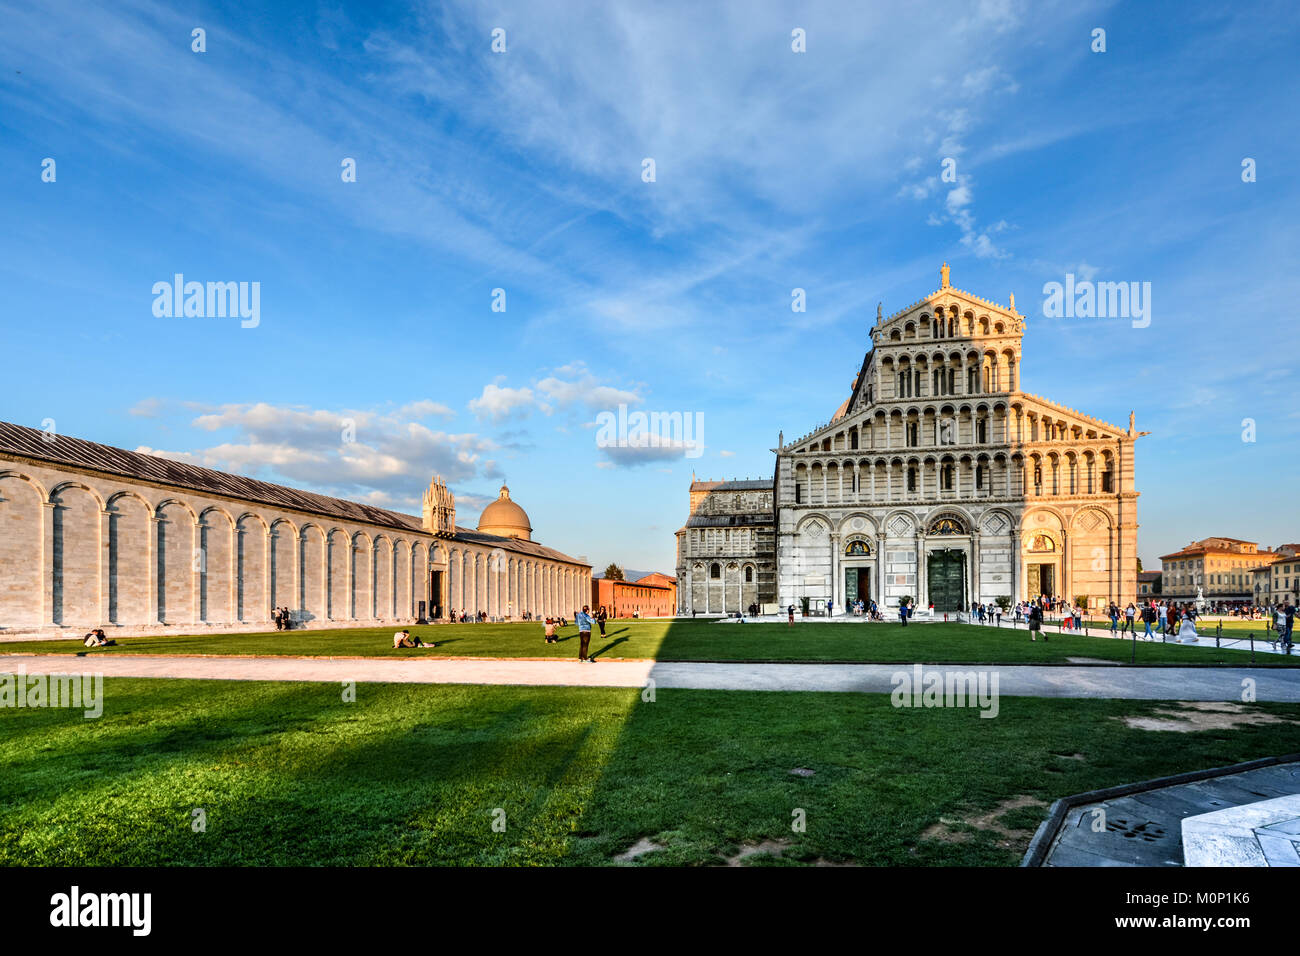 The Camposanto Monumentale and the Duomo, Pisa Cathedral in the Piazza dei Miracoli in Pisa Italy as the Baptistry Stock Photo